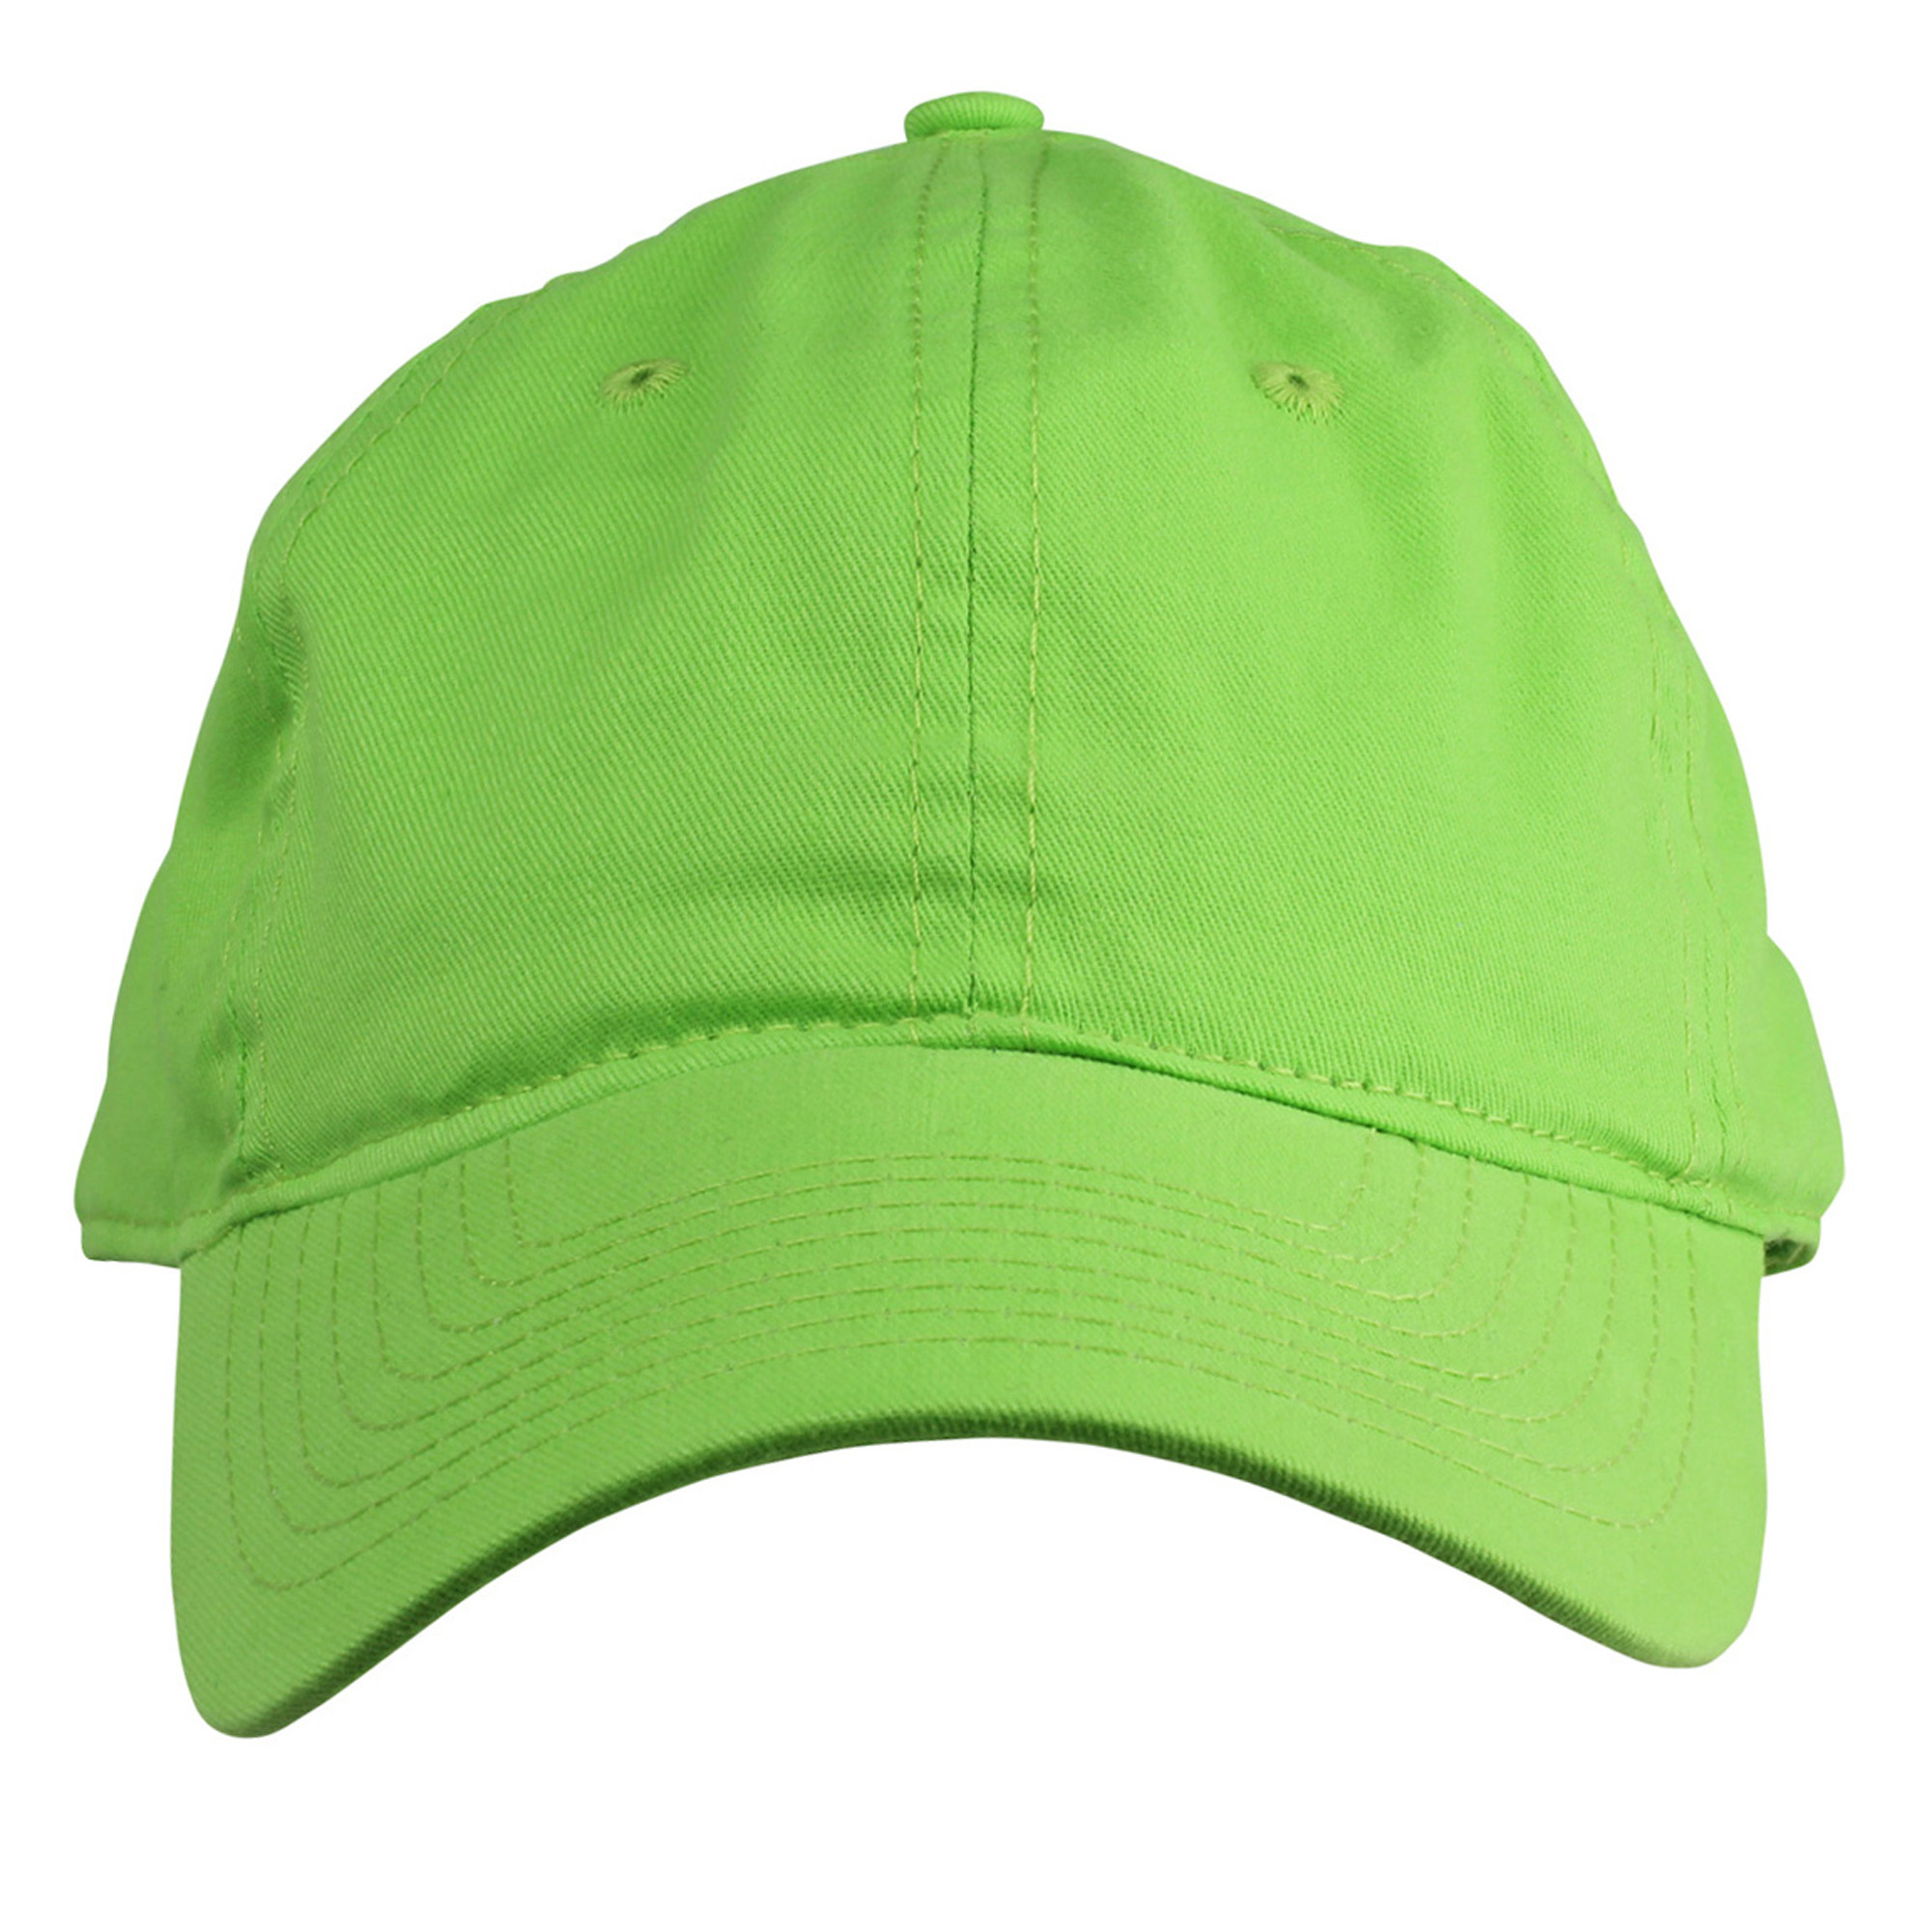 535dd7a5217c9 DALIX - DALIX Womens Pastel Lovers Cap - Adjustable Hat with Velcro Closure  in Lime Green - Walmart.com